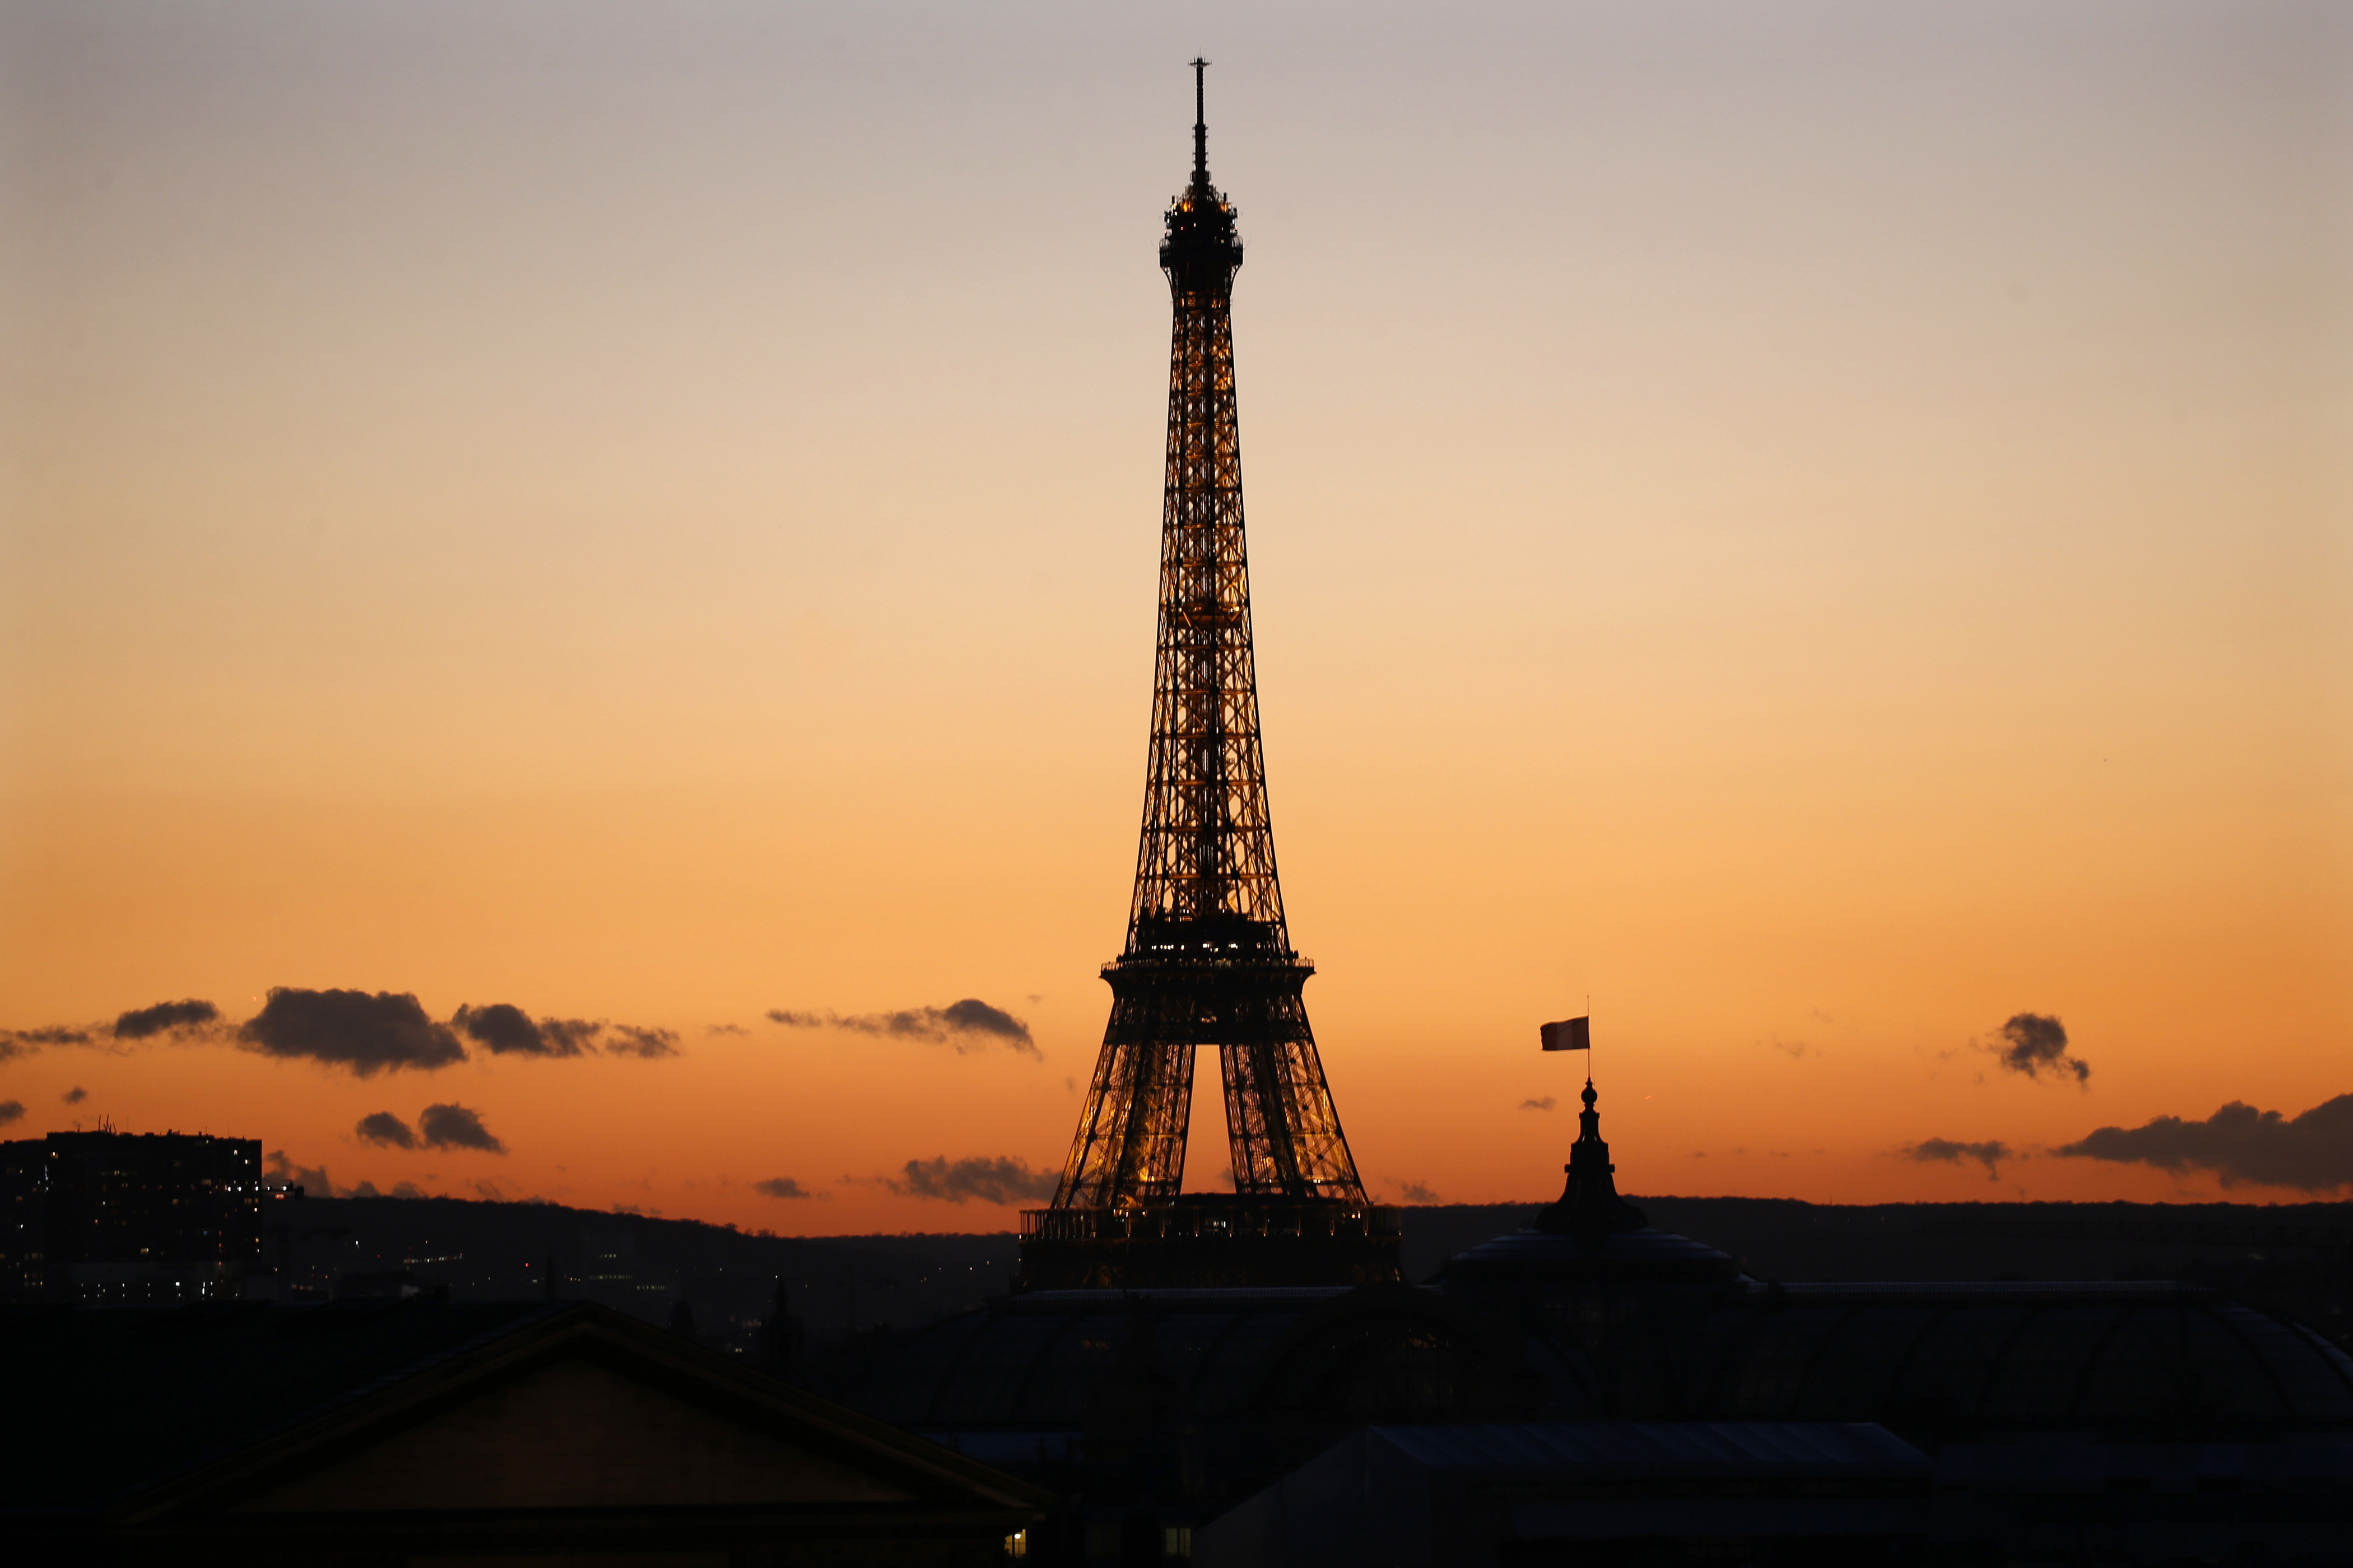 The Eiffel Tower is seen in silhouette at sunset on a winter day in Paris, France, January 15, 2016.